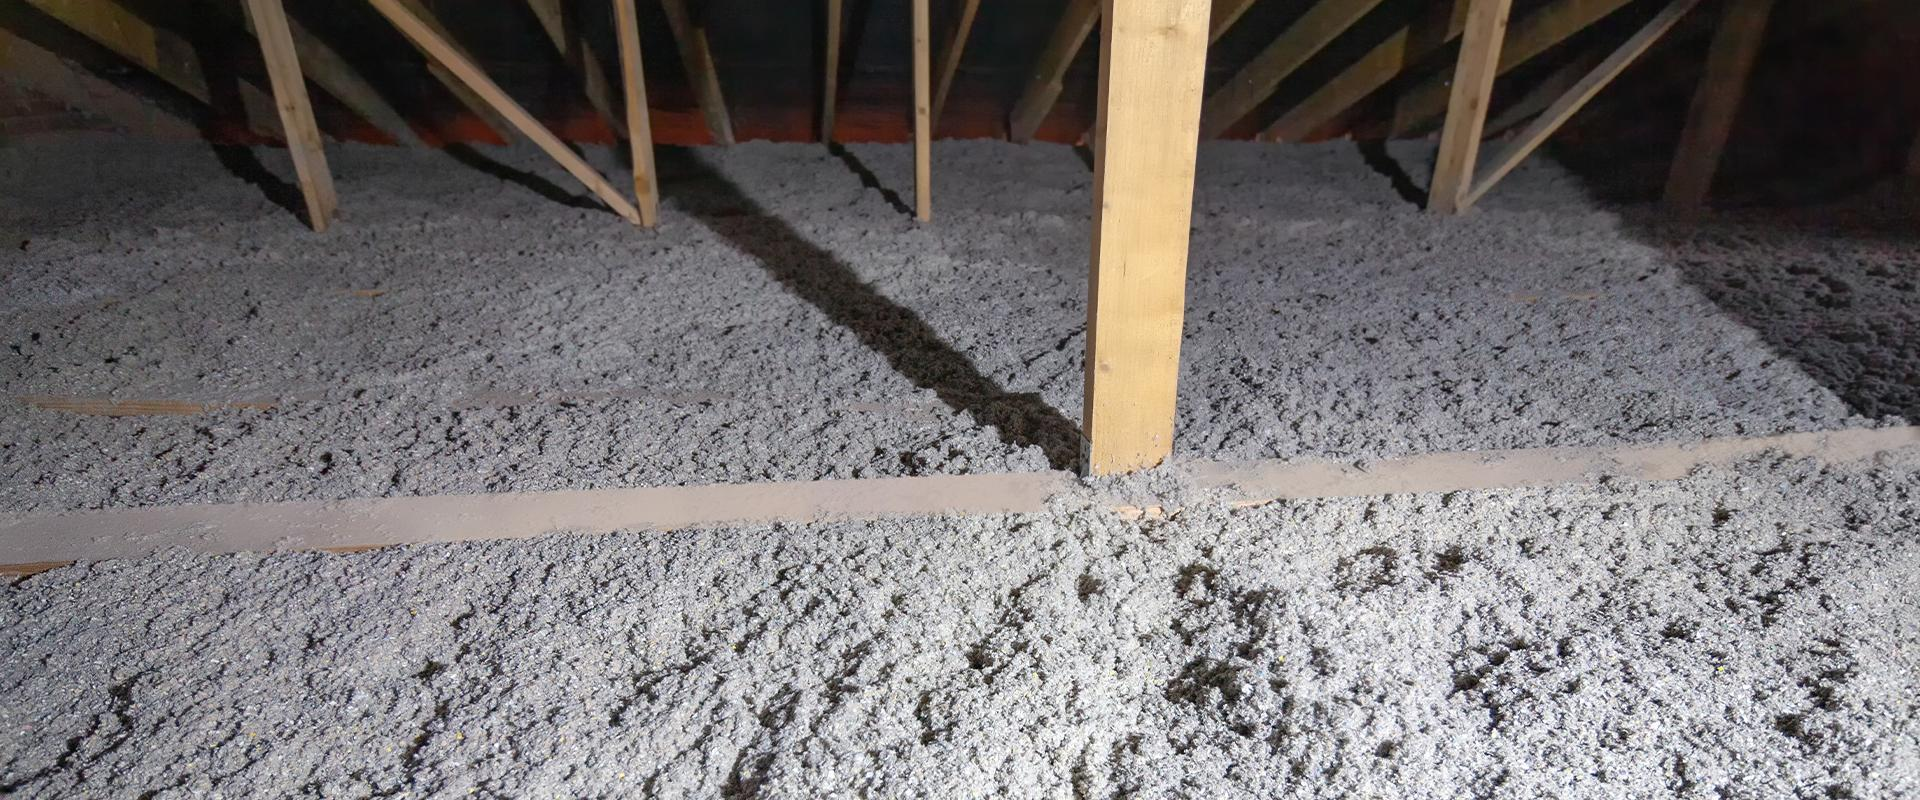 tap insulation in an attic